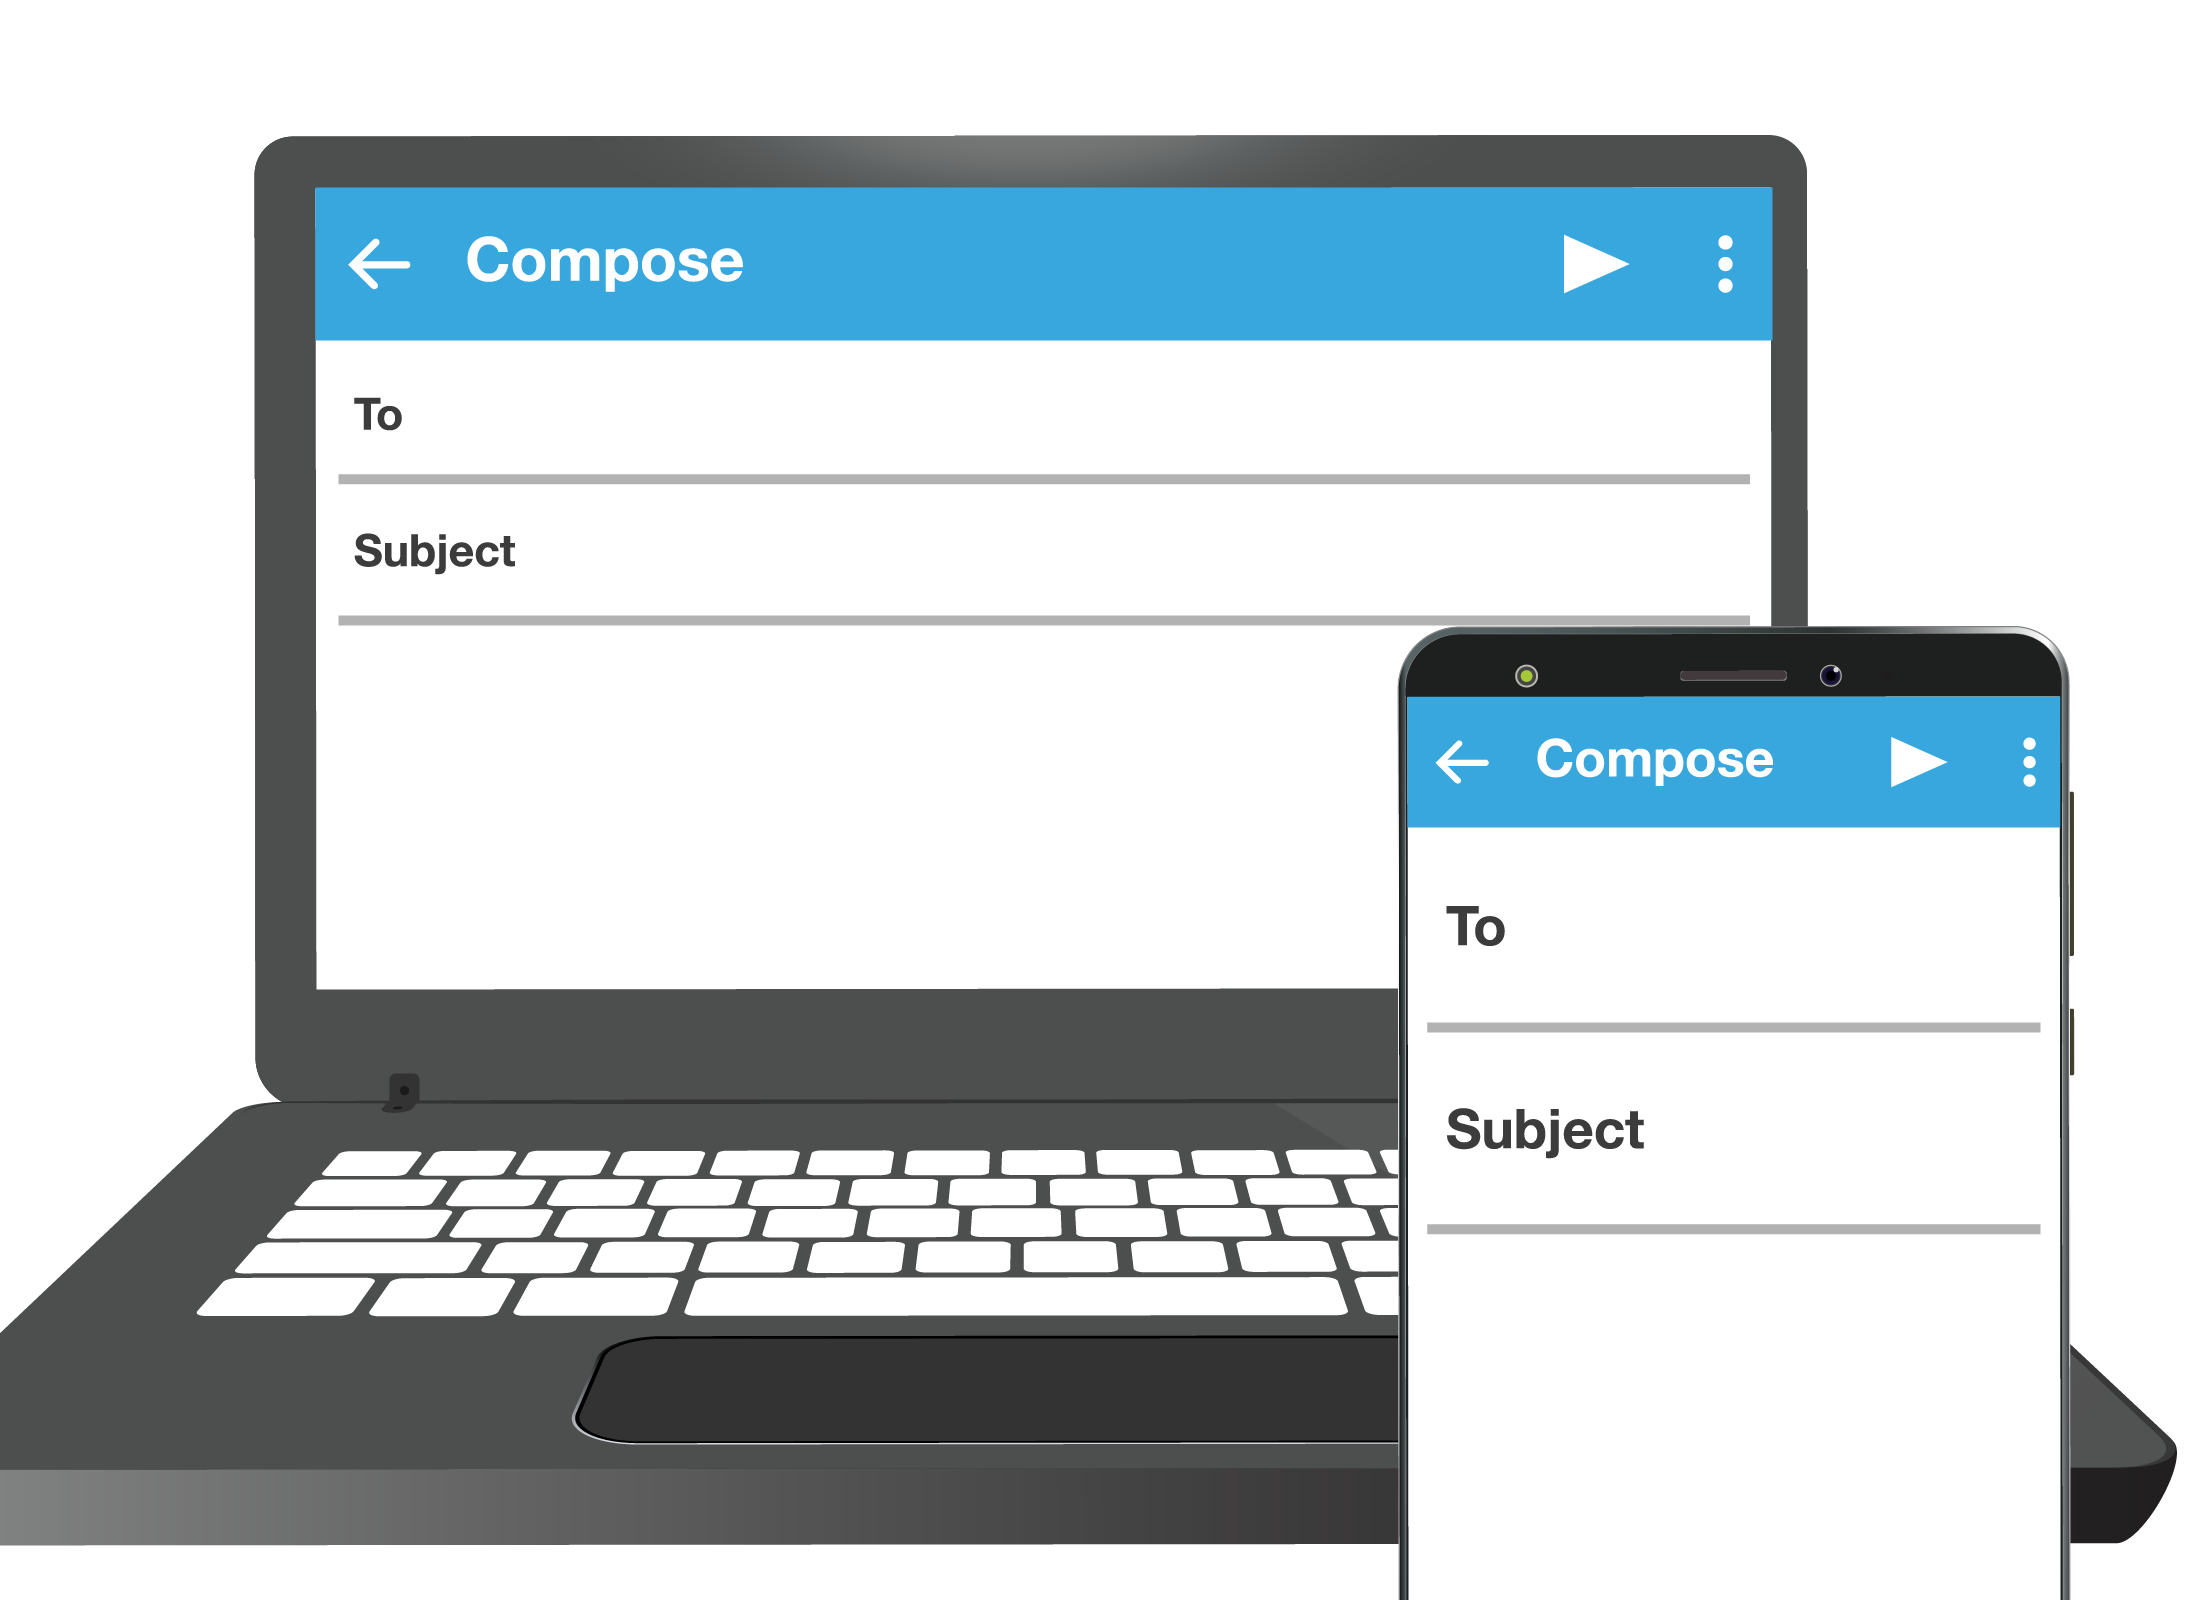 The same email app displayed on a laptop computer and slightly differently on a smartphone